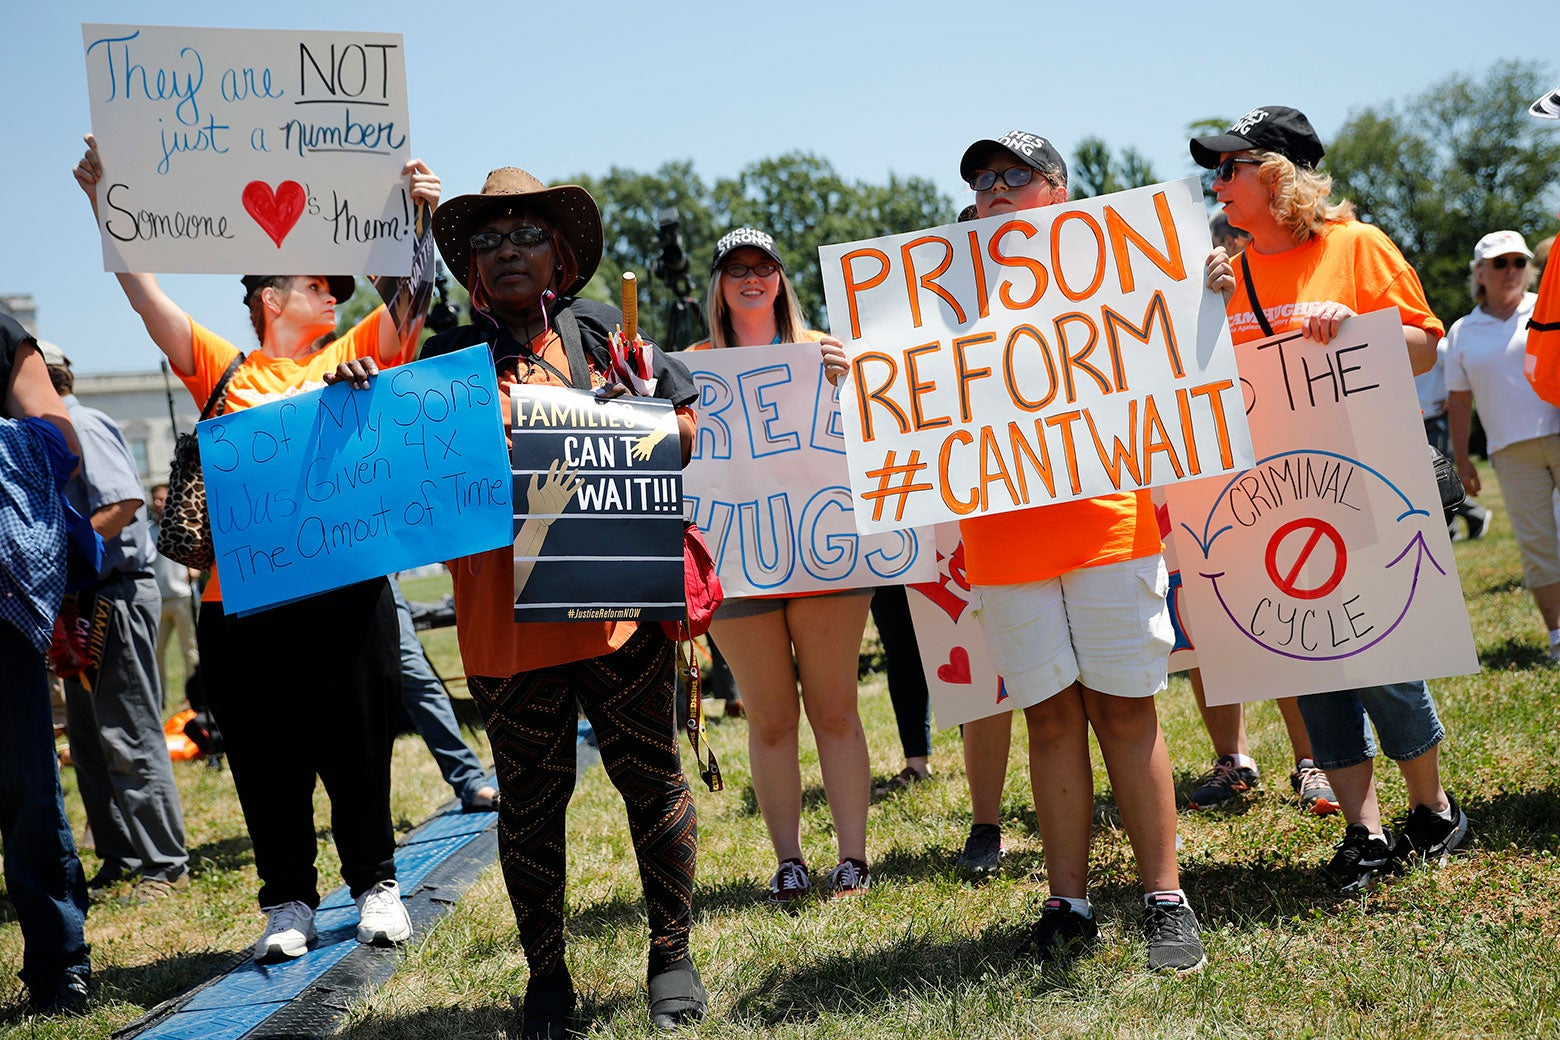 Protesters hold signs during a rally calling for criminal justice reform.